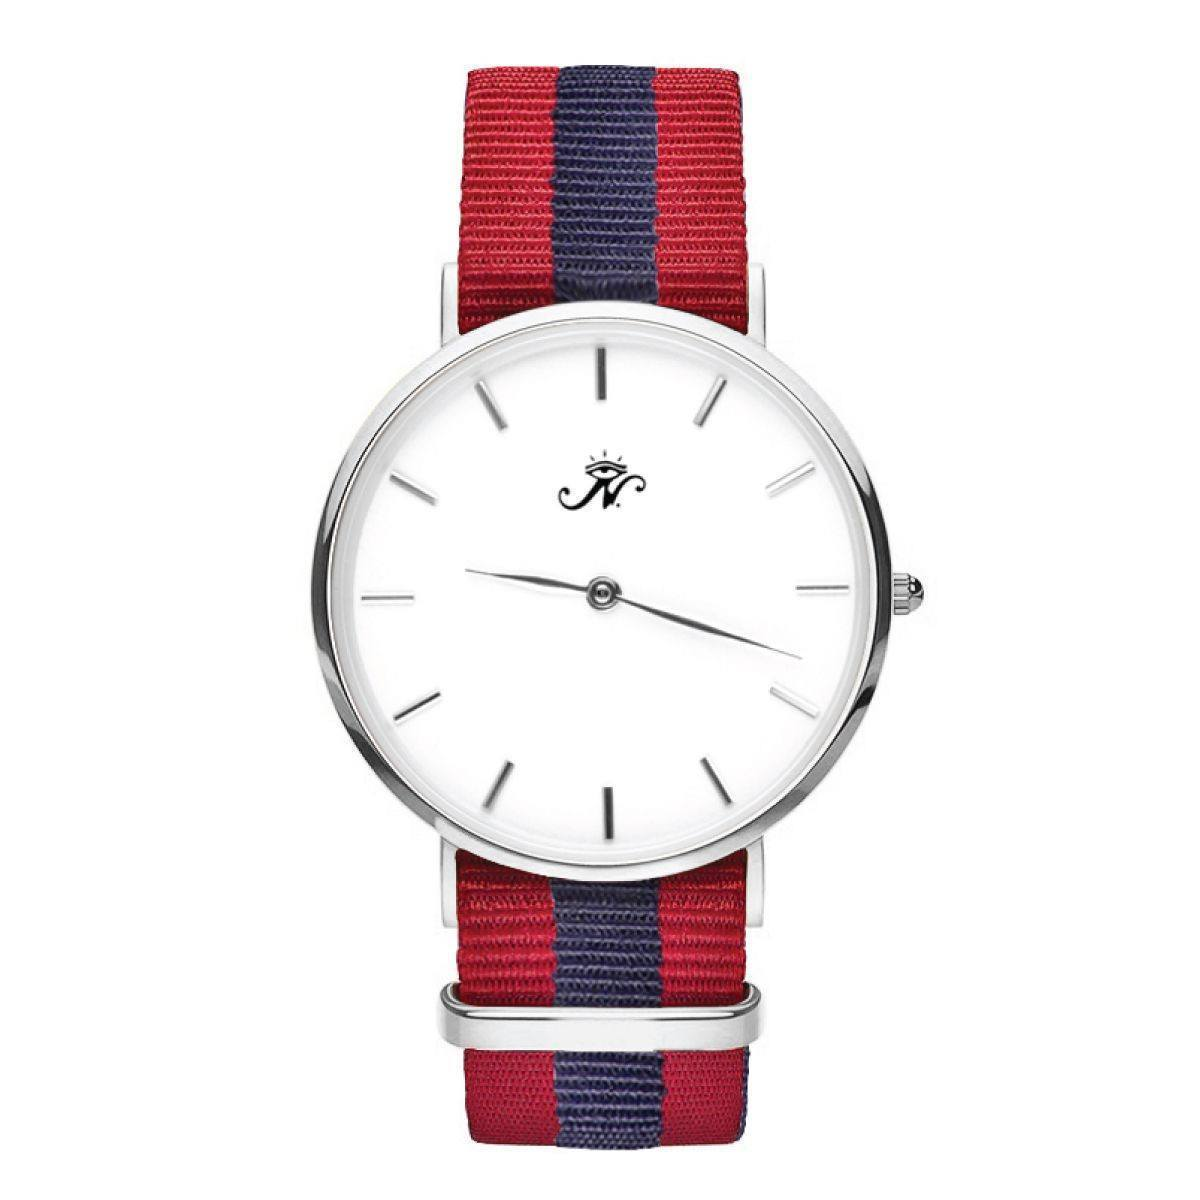 Finch - Silver Timepiece with NATO Strap